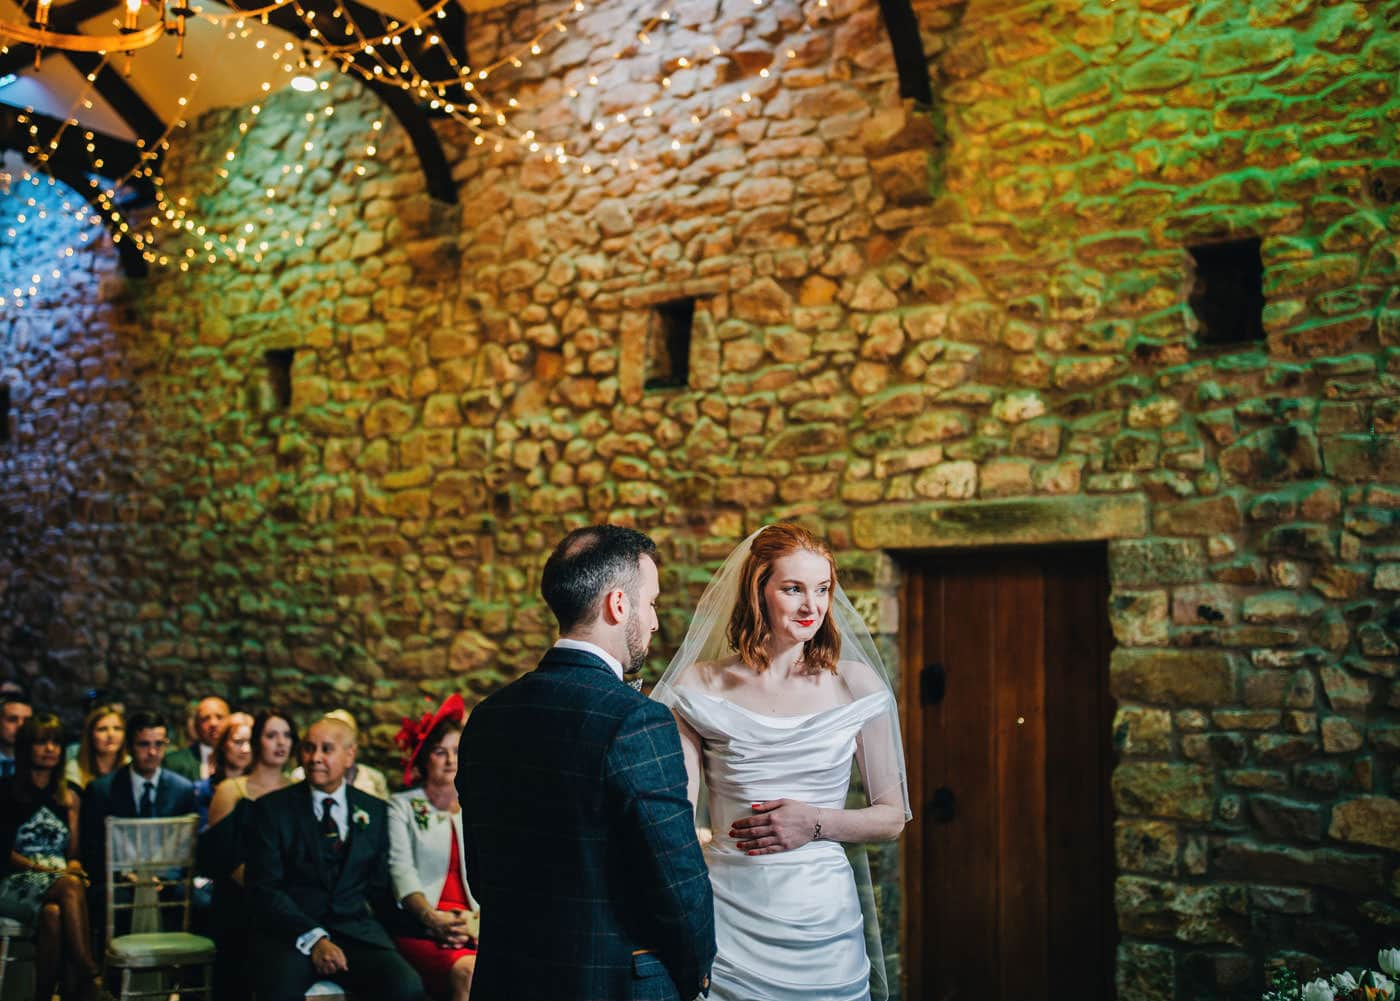 beautiful wedding ceremony at Browsholme Hall wedding venue